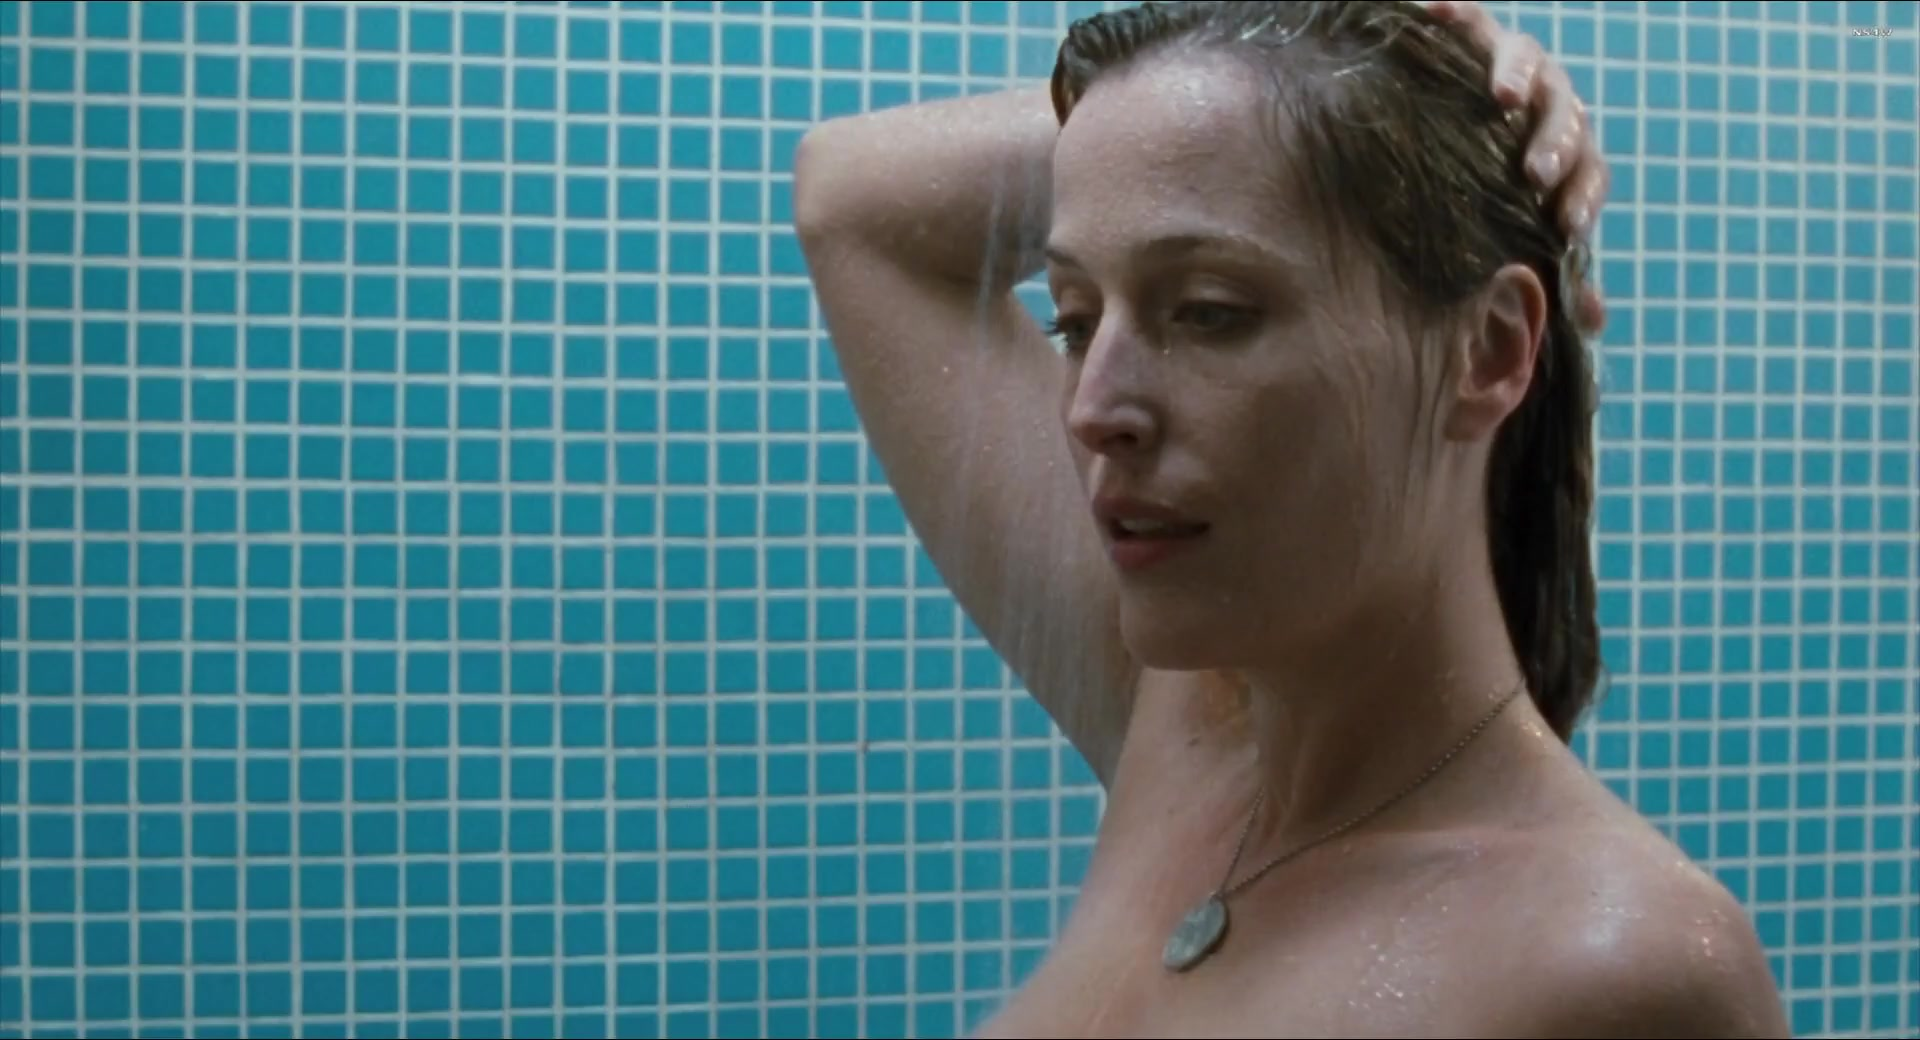 gillian anderson naked straightheads